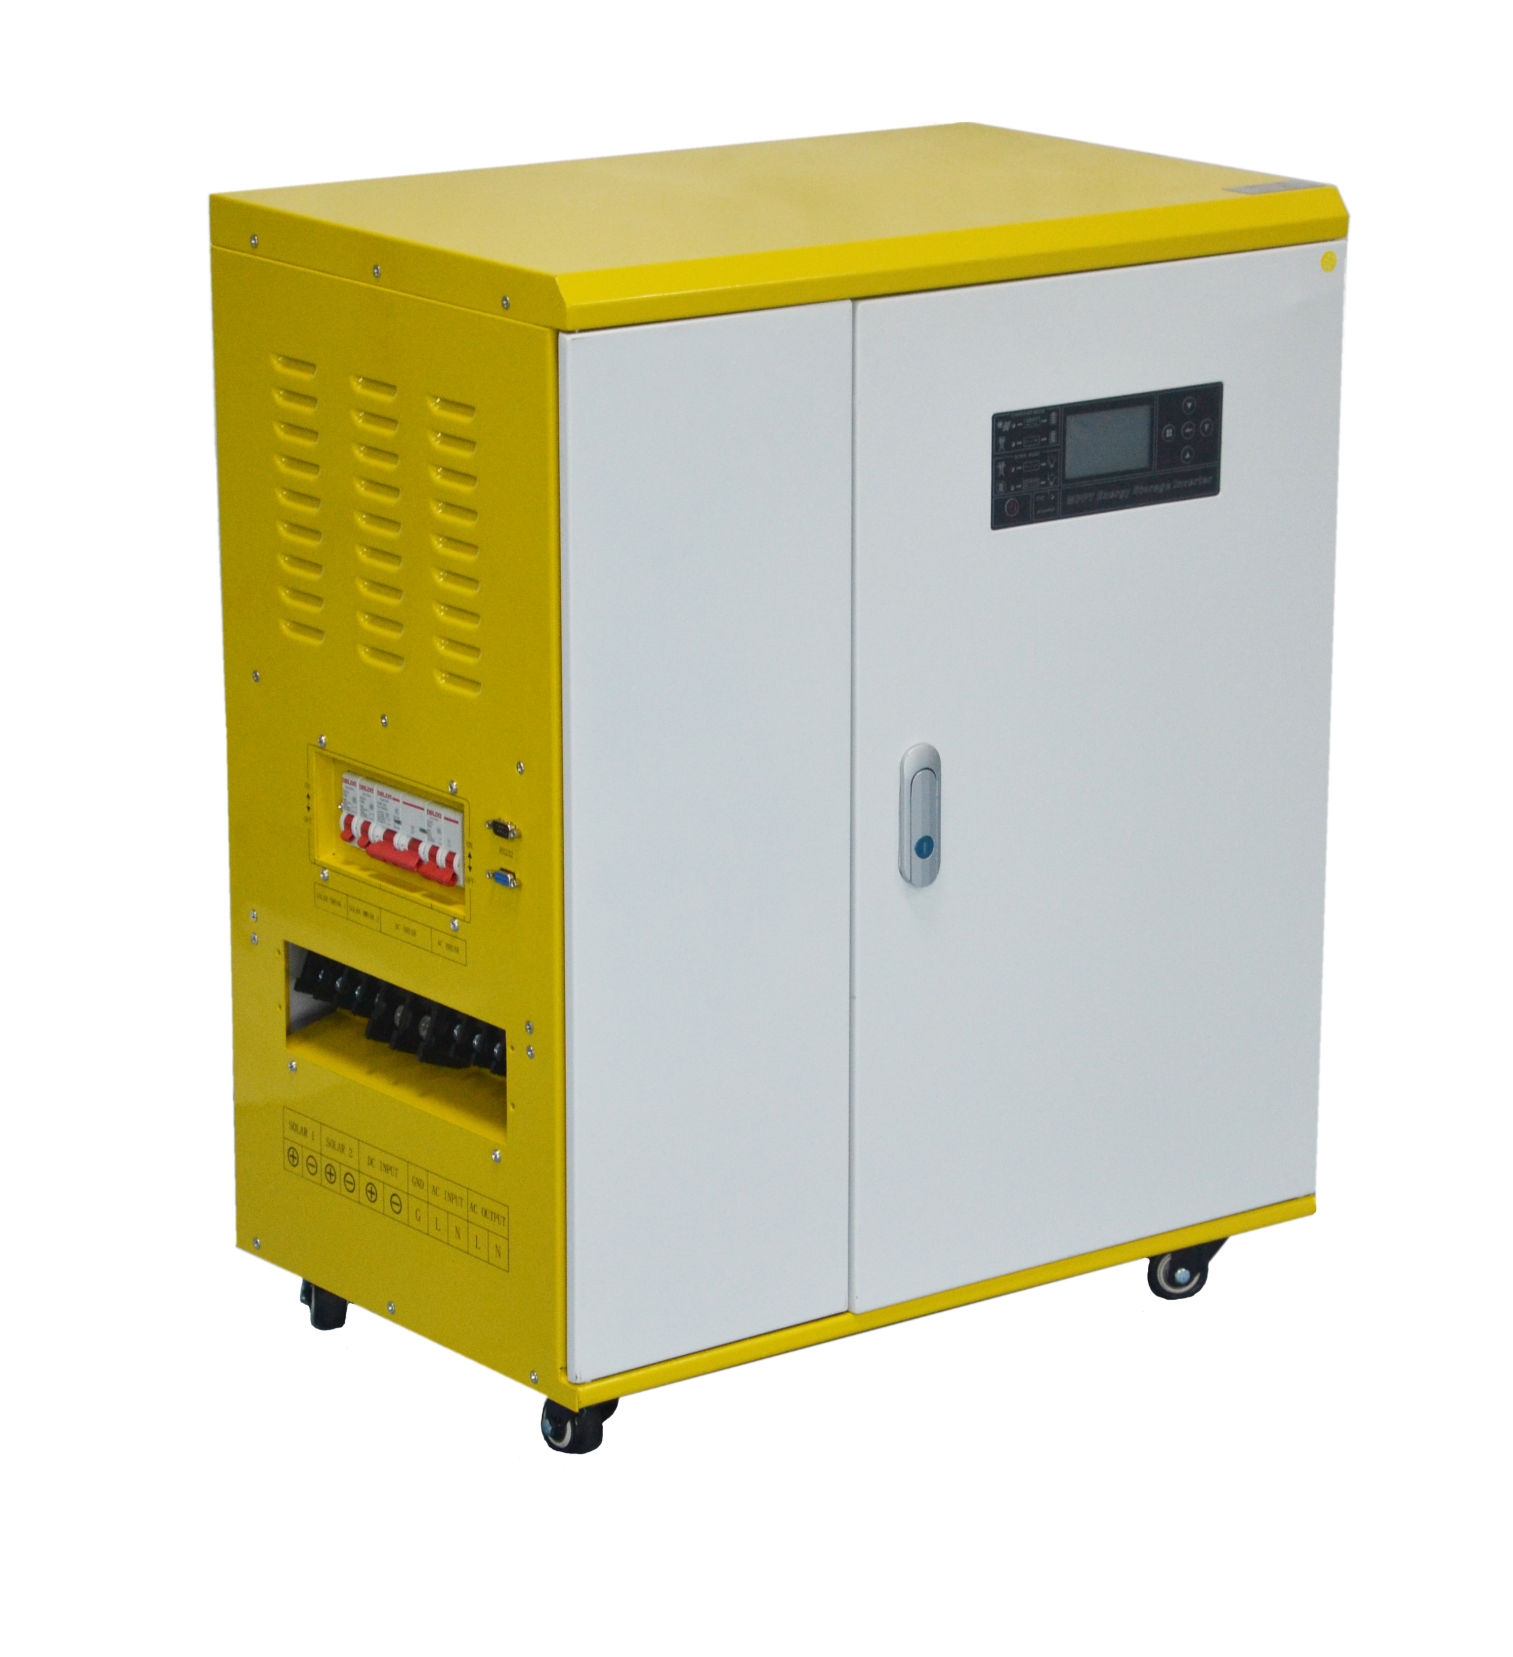 How to set the working mode of Didisolar solar inverter?